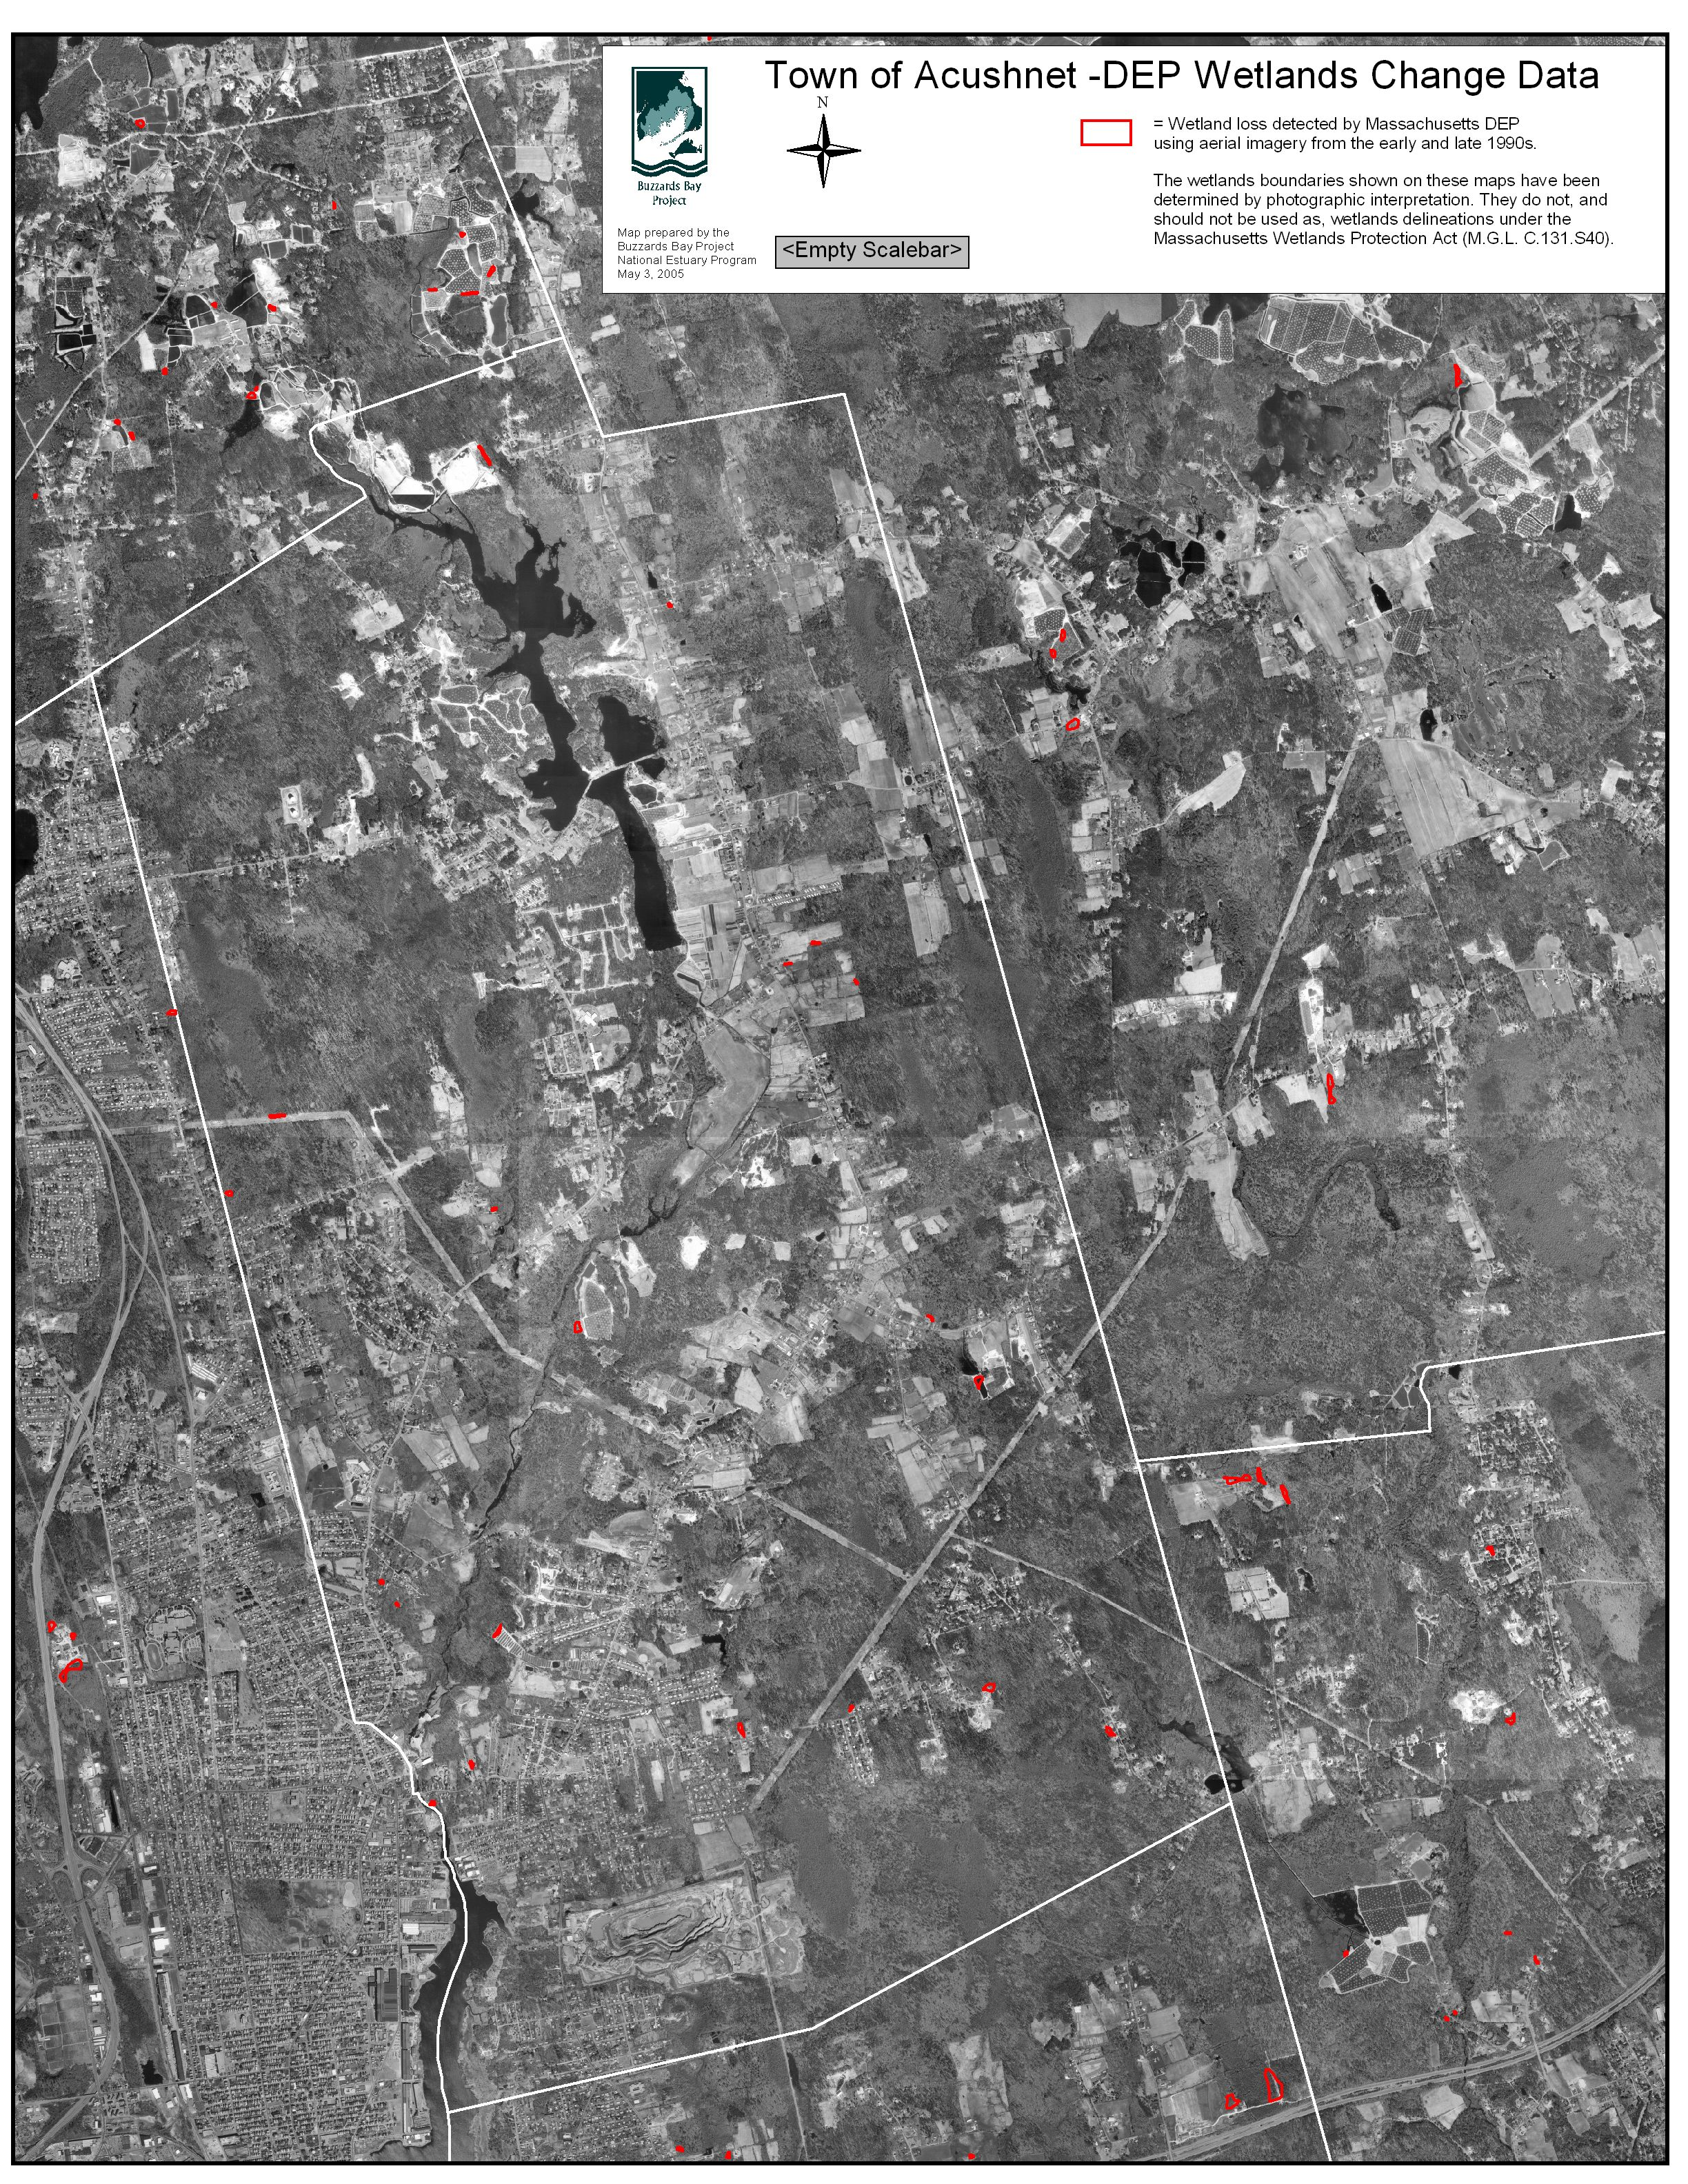 Town Of Acushnet Wetland Loss Map